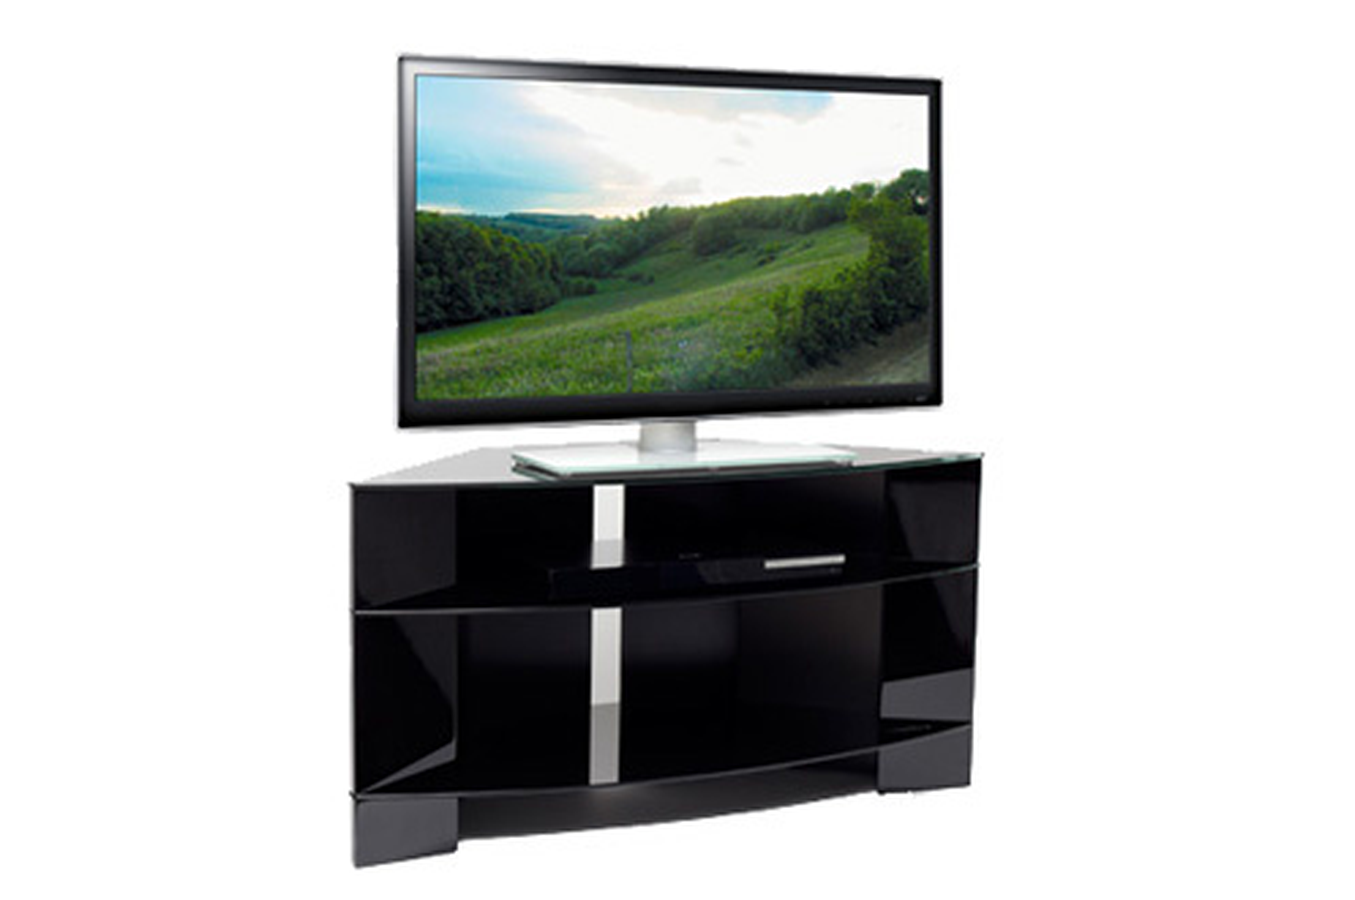 Meuble Tv Norstone Darty Palzon Com # Meuble Tv D'Angle Darty